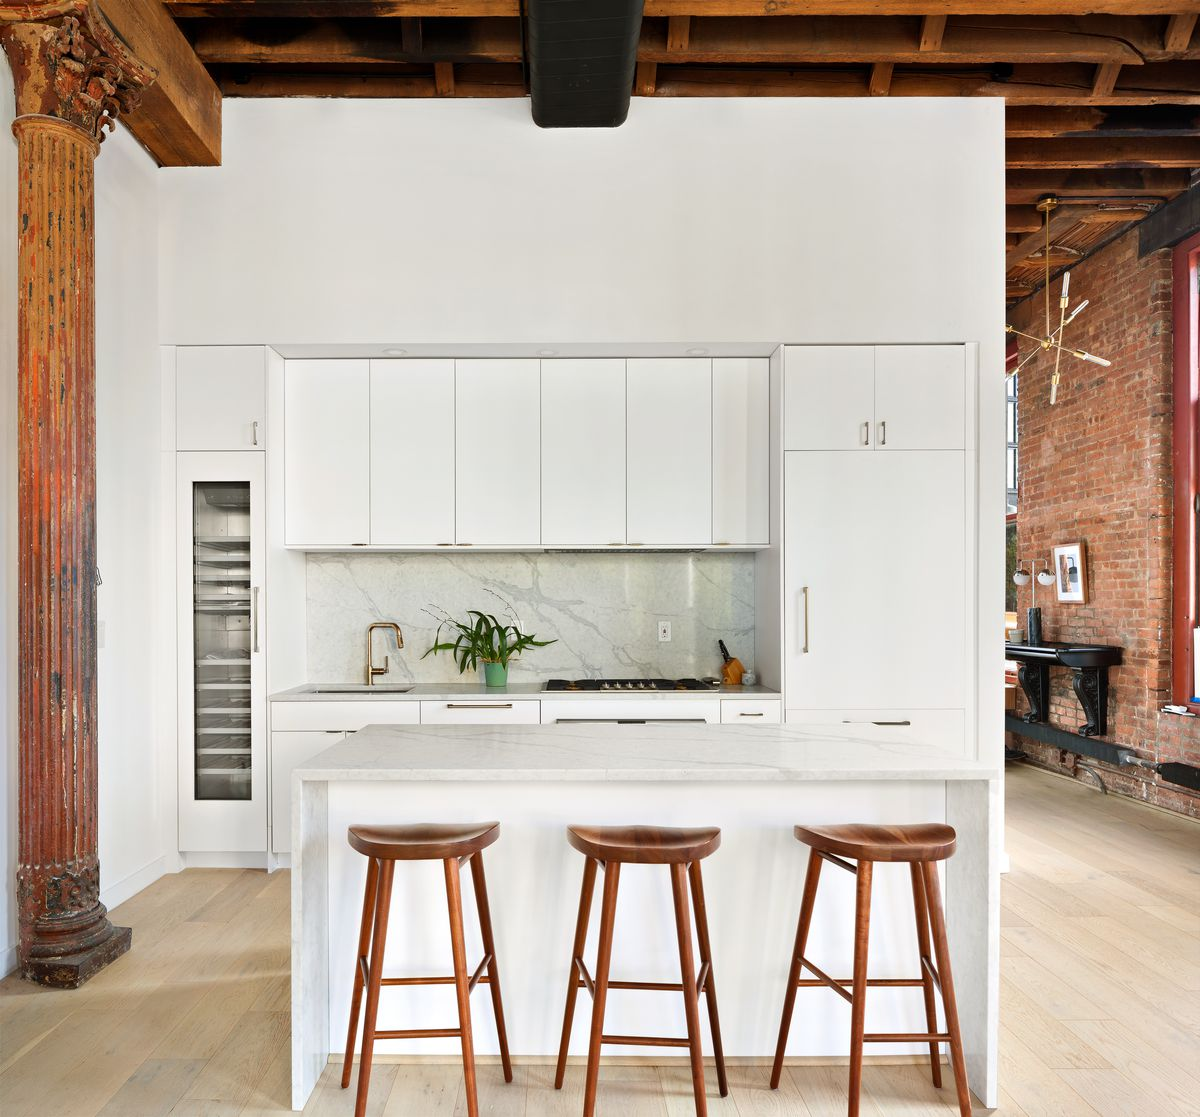 A kitchen with white cabinetry and a wine fridge.